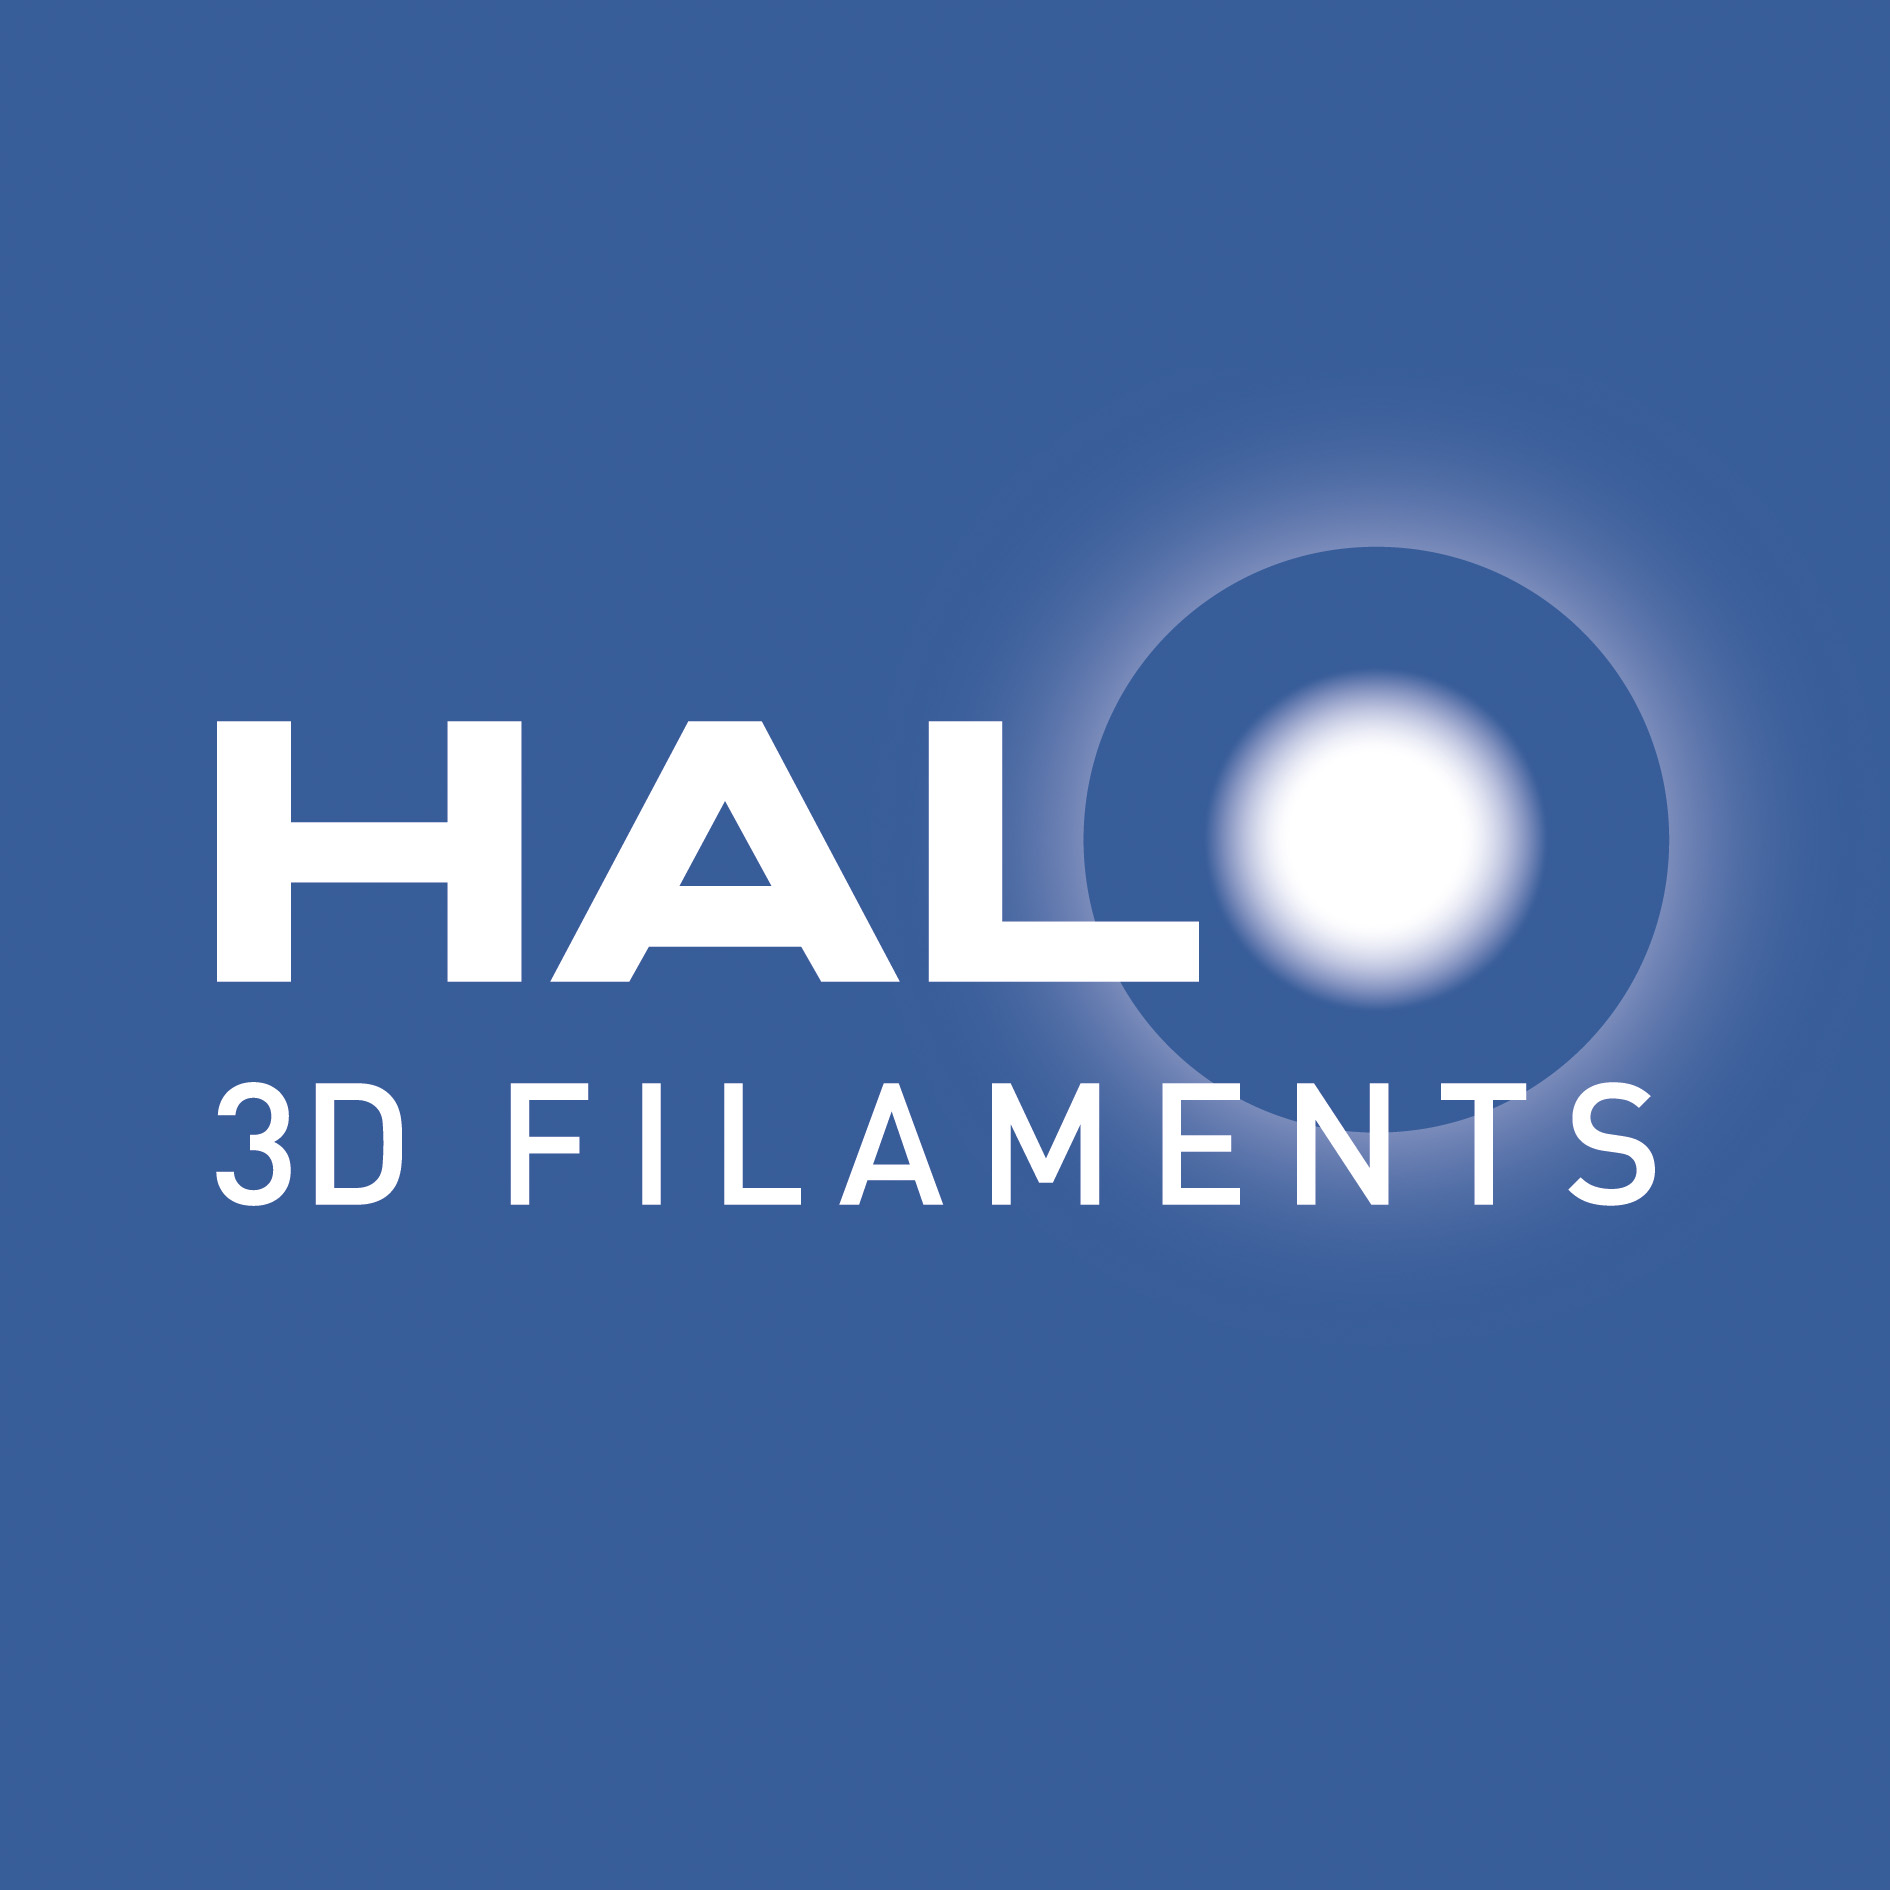 HALO 3D filaments is high gloss PLA in exclusive colors